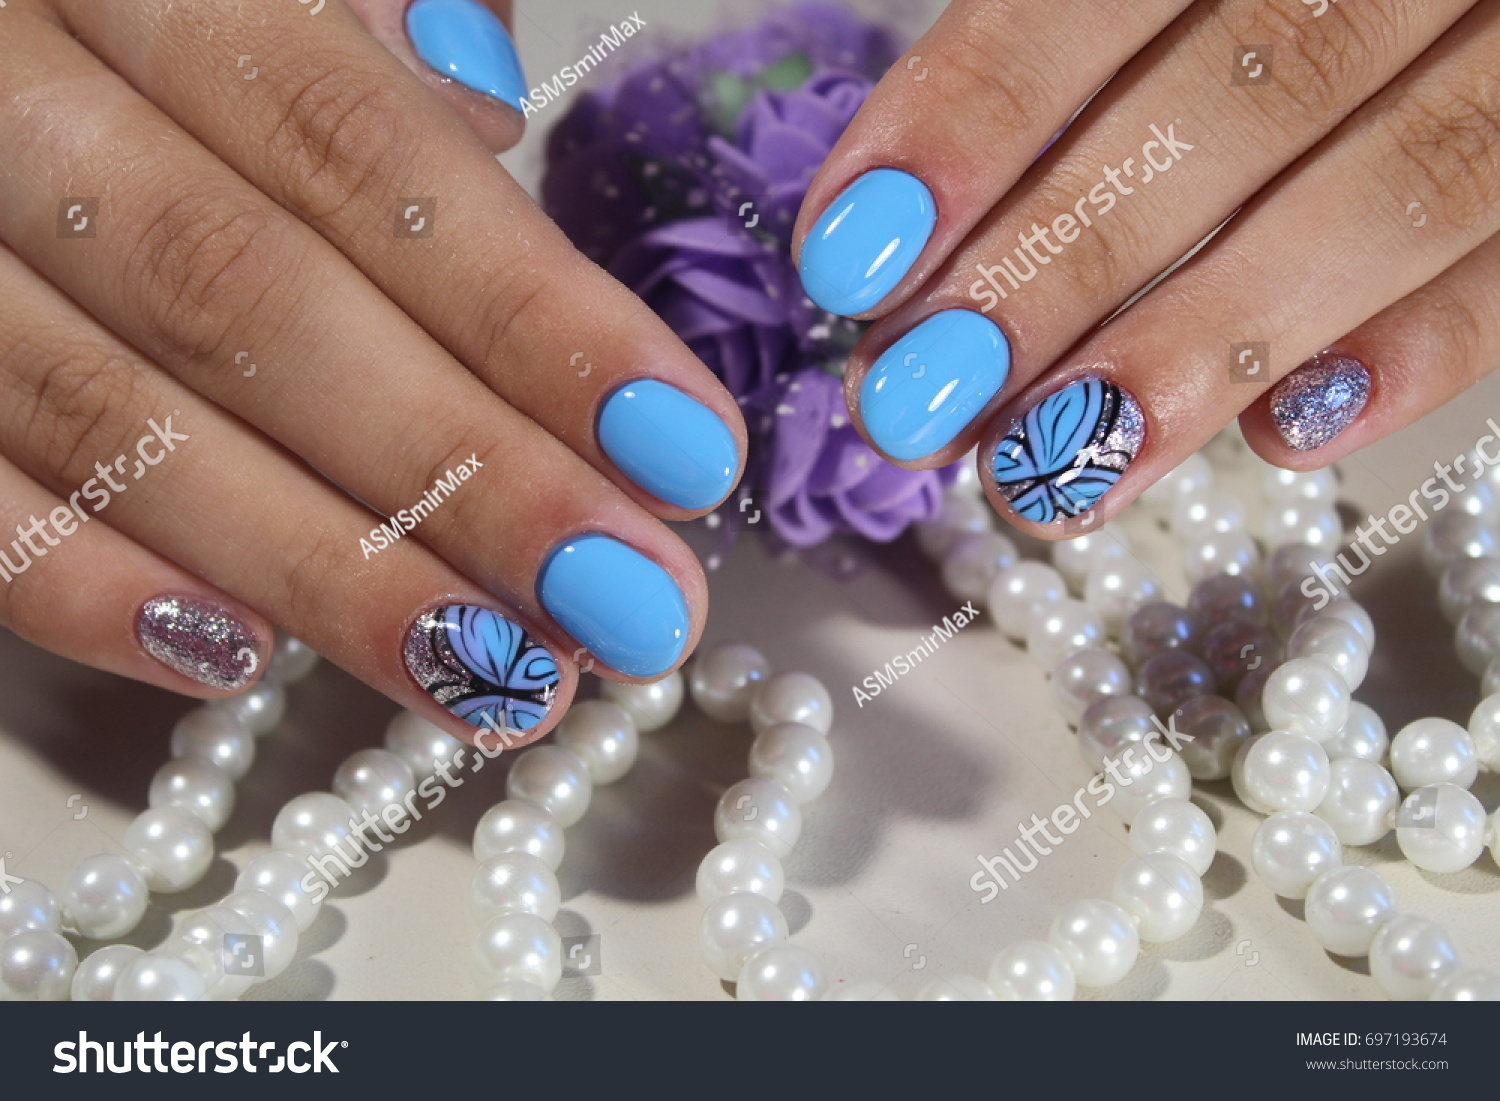 Beautiful Nail Design Blue Nails Pattern Stock Photo (Download Now ...